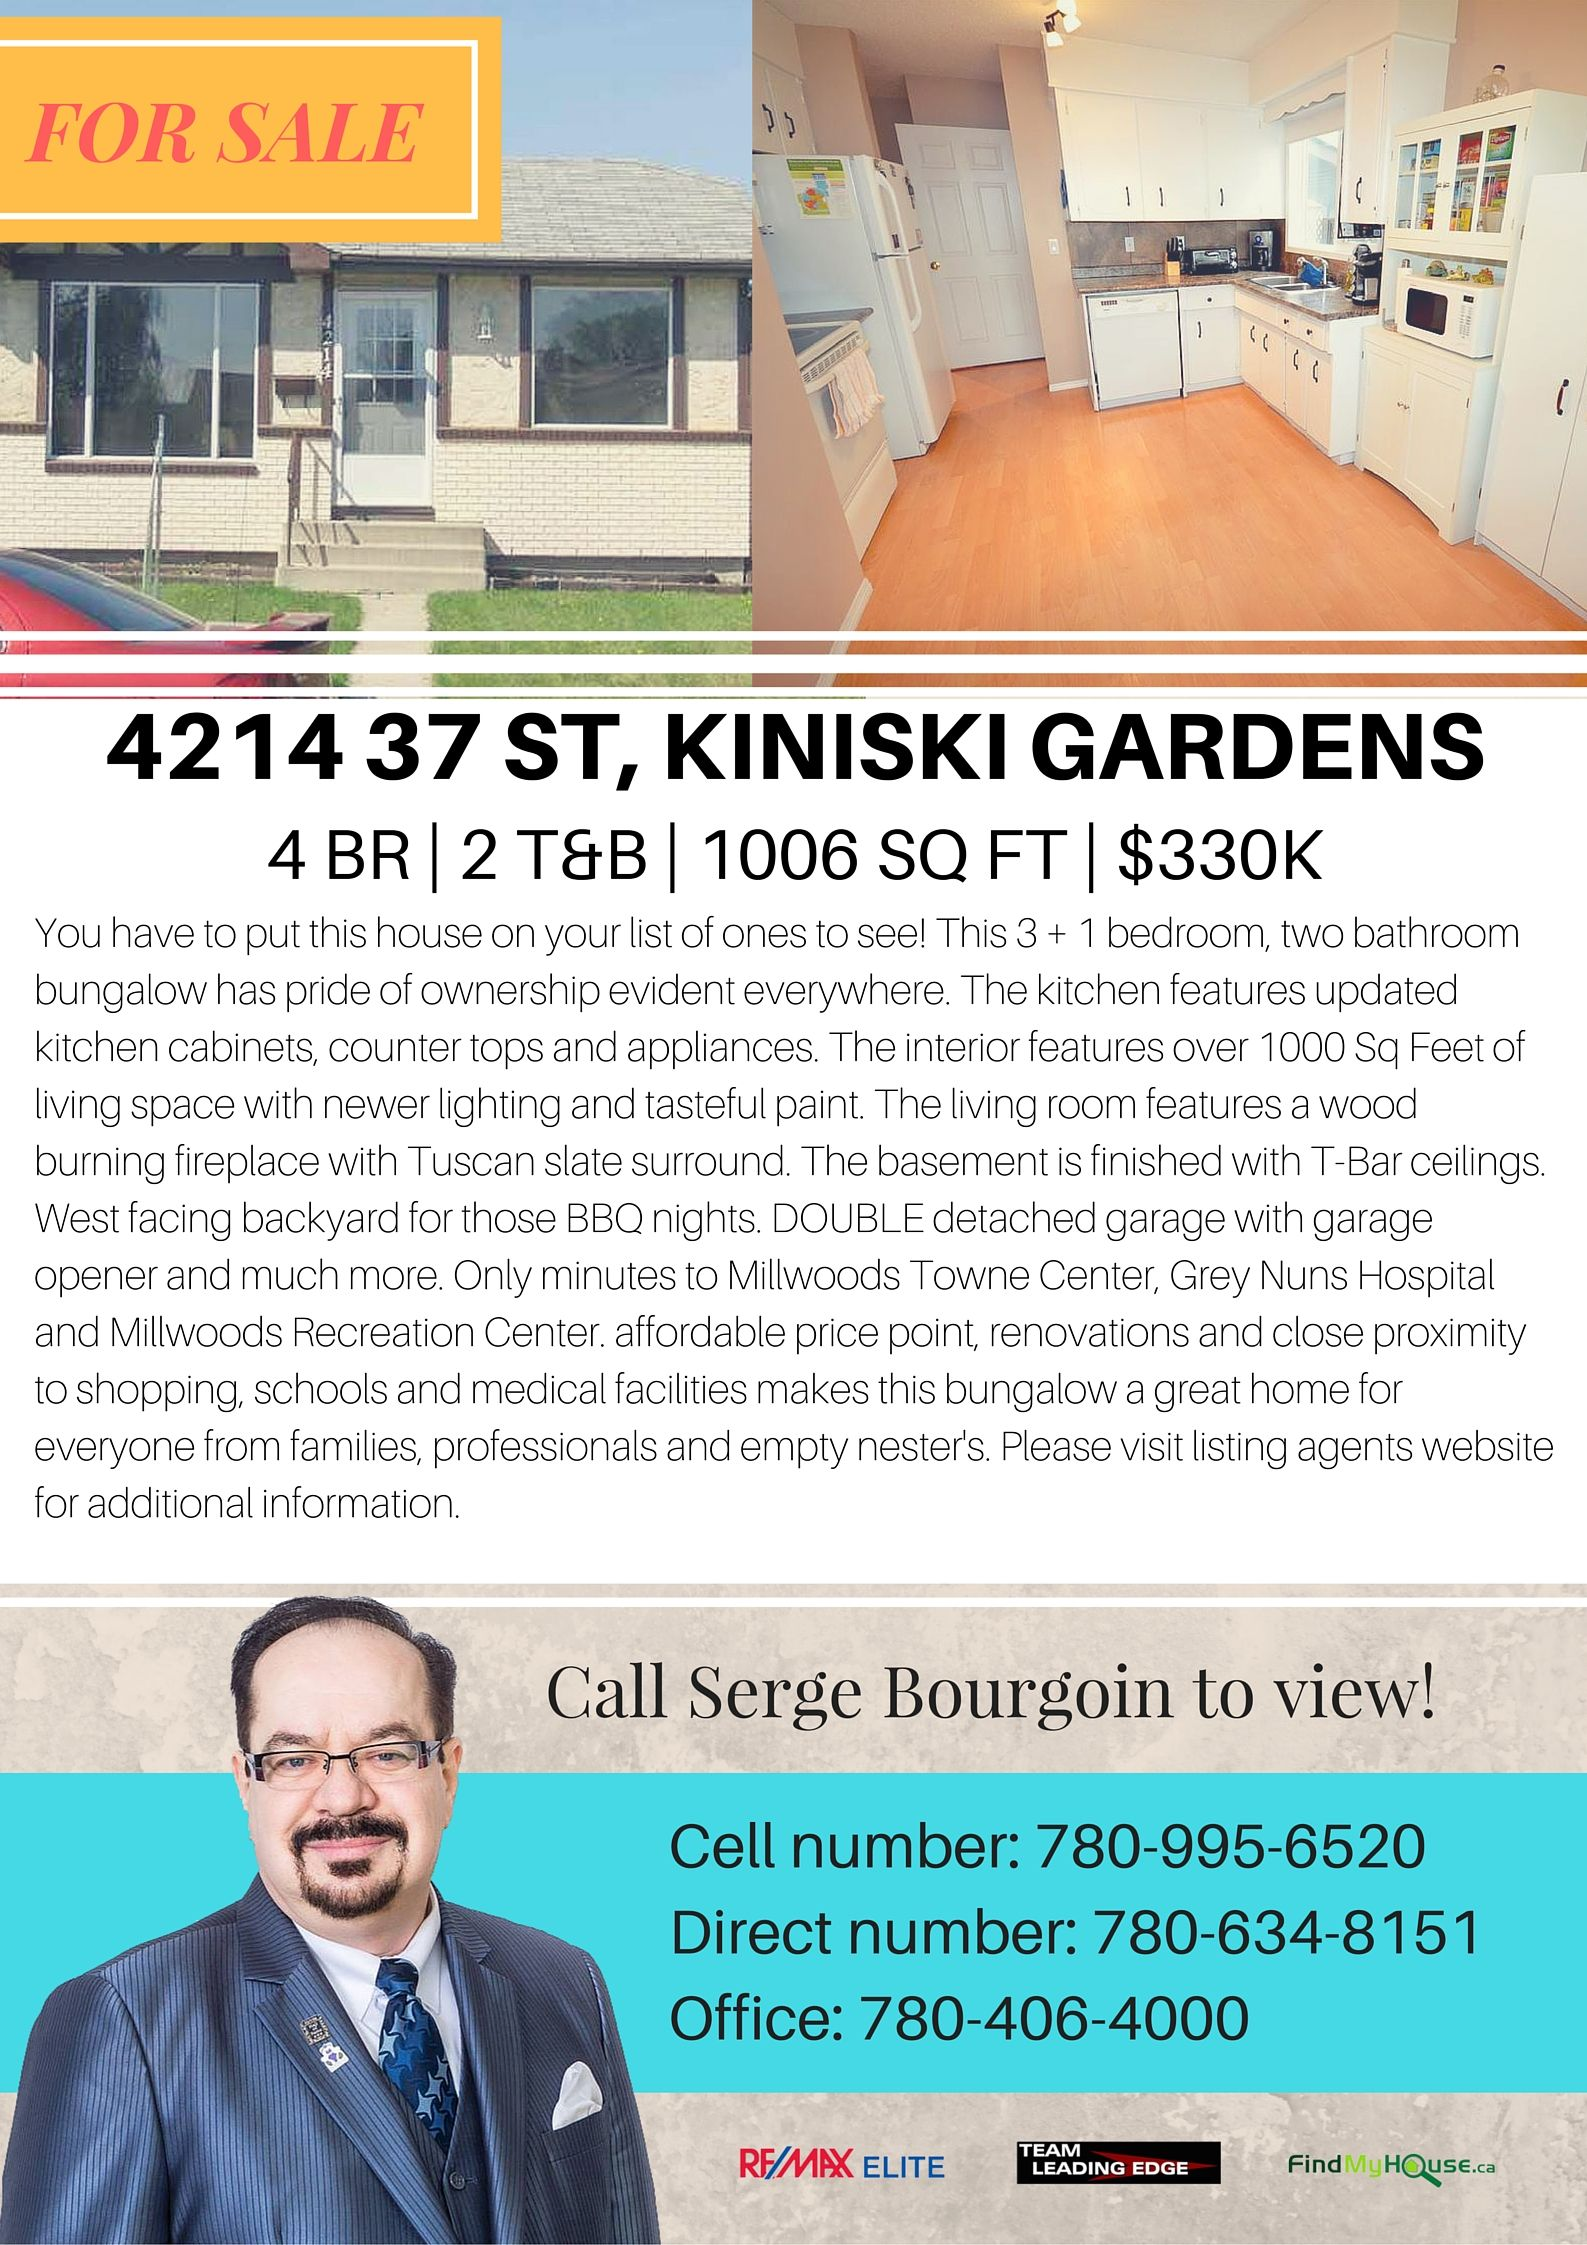 kiniski gardens edmonton home for sale